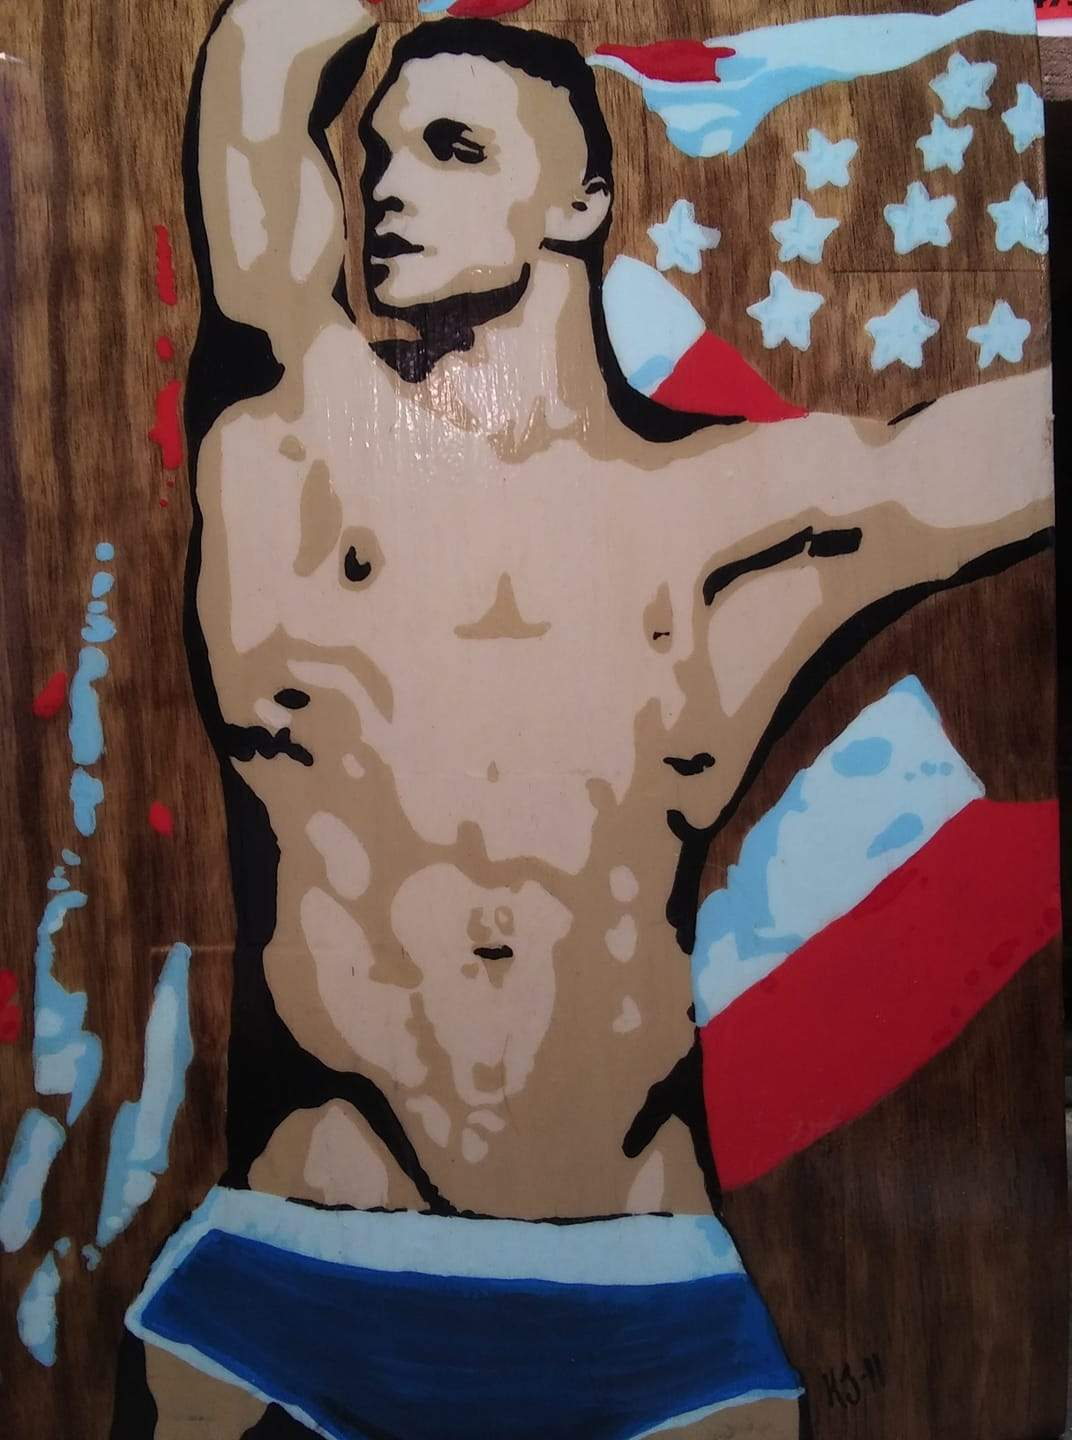 One for the Team Acrylics on Wood Hand painted LGBT Nude Gay Pop Art